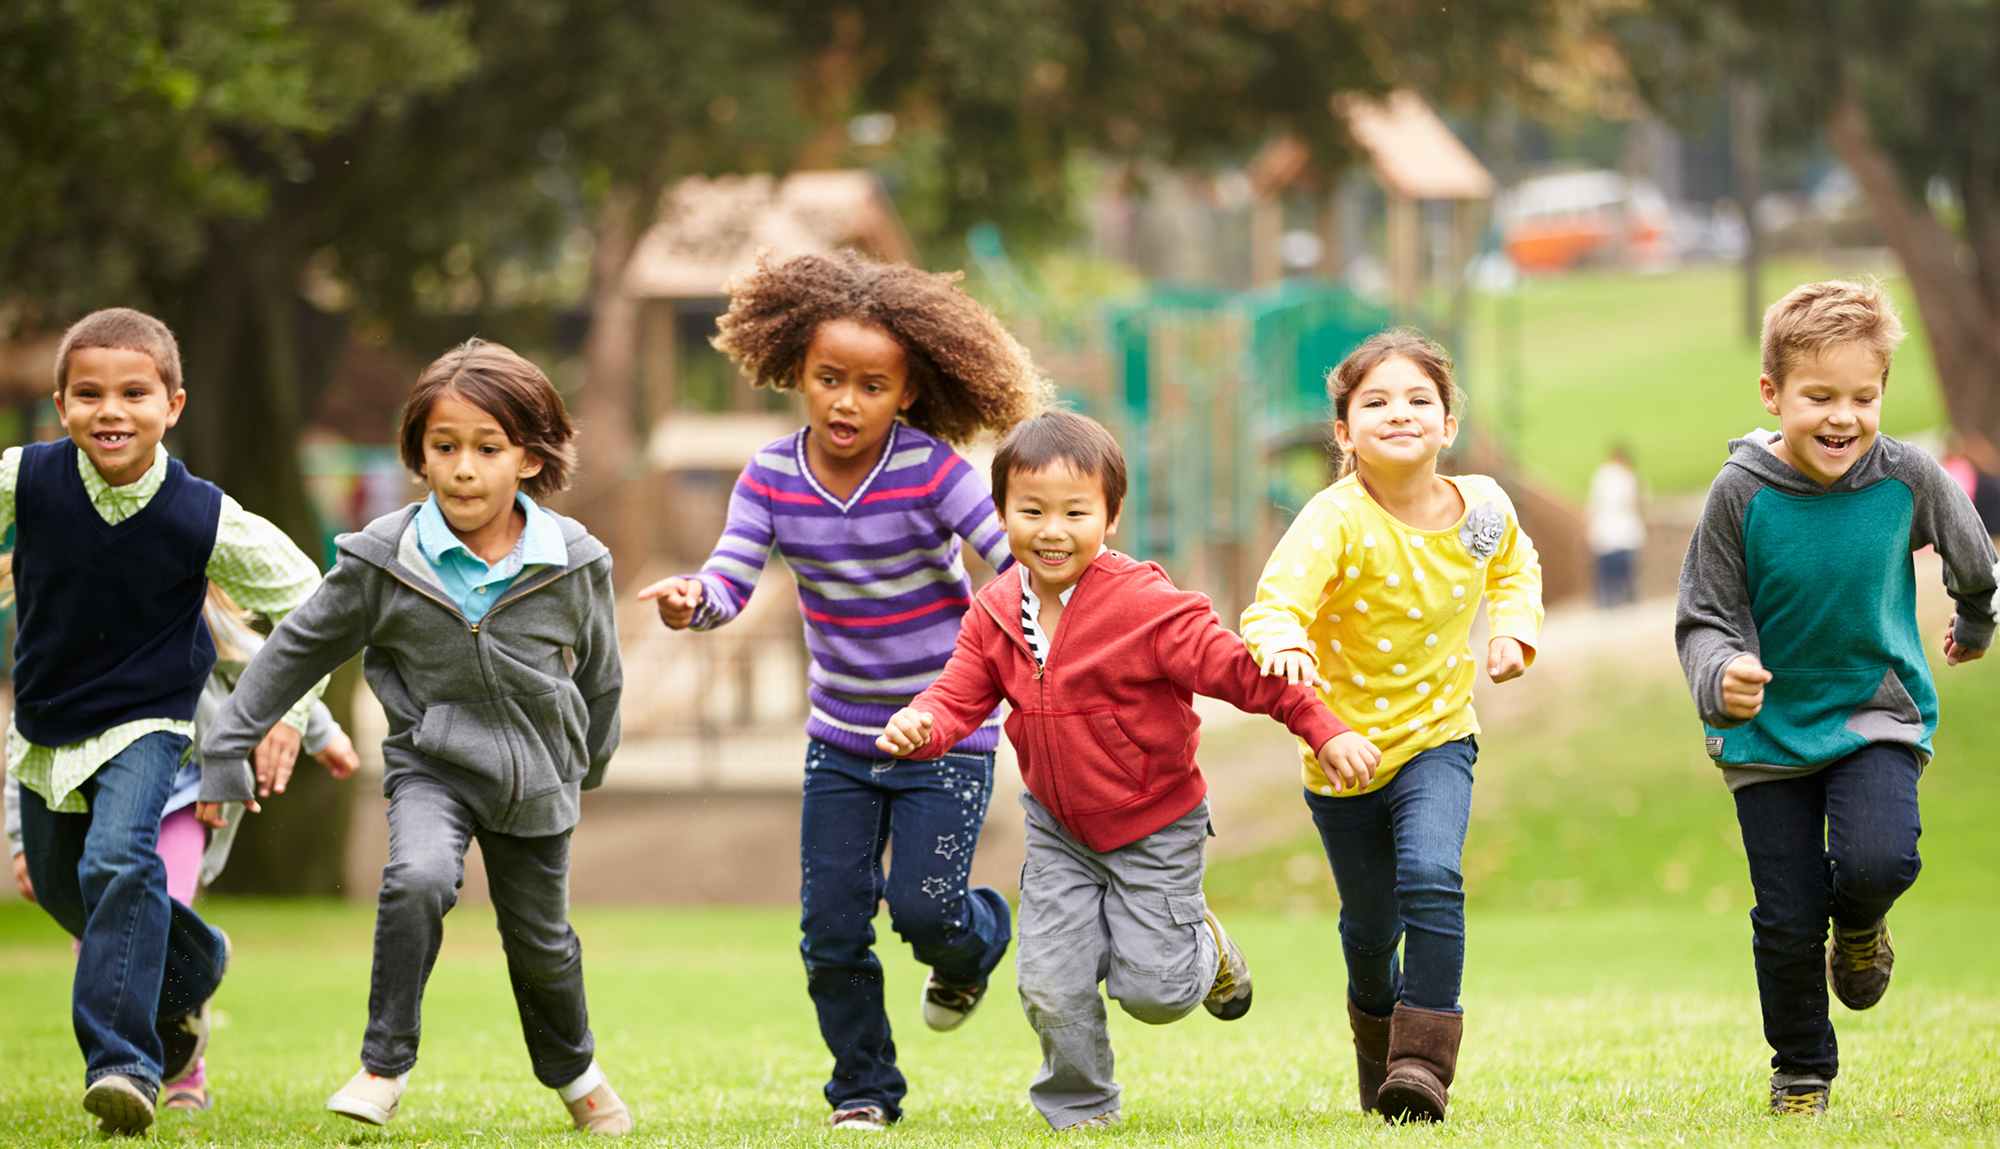 Several children run together in the park.